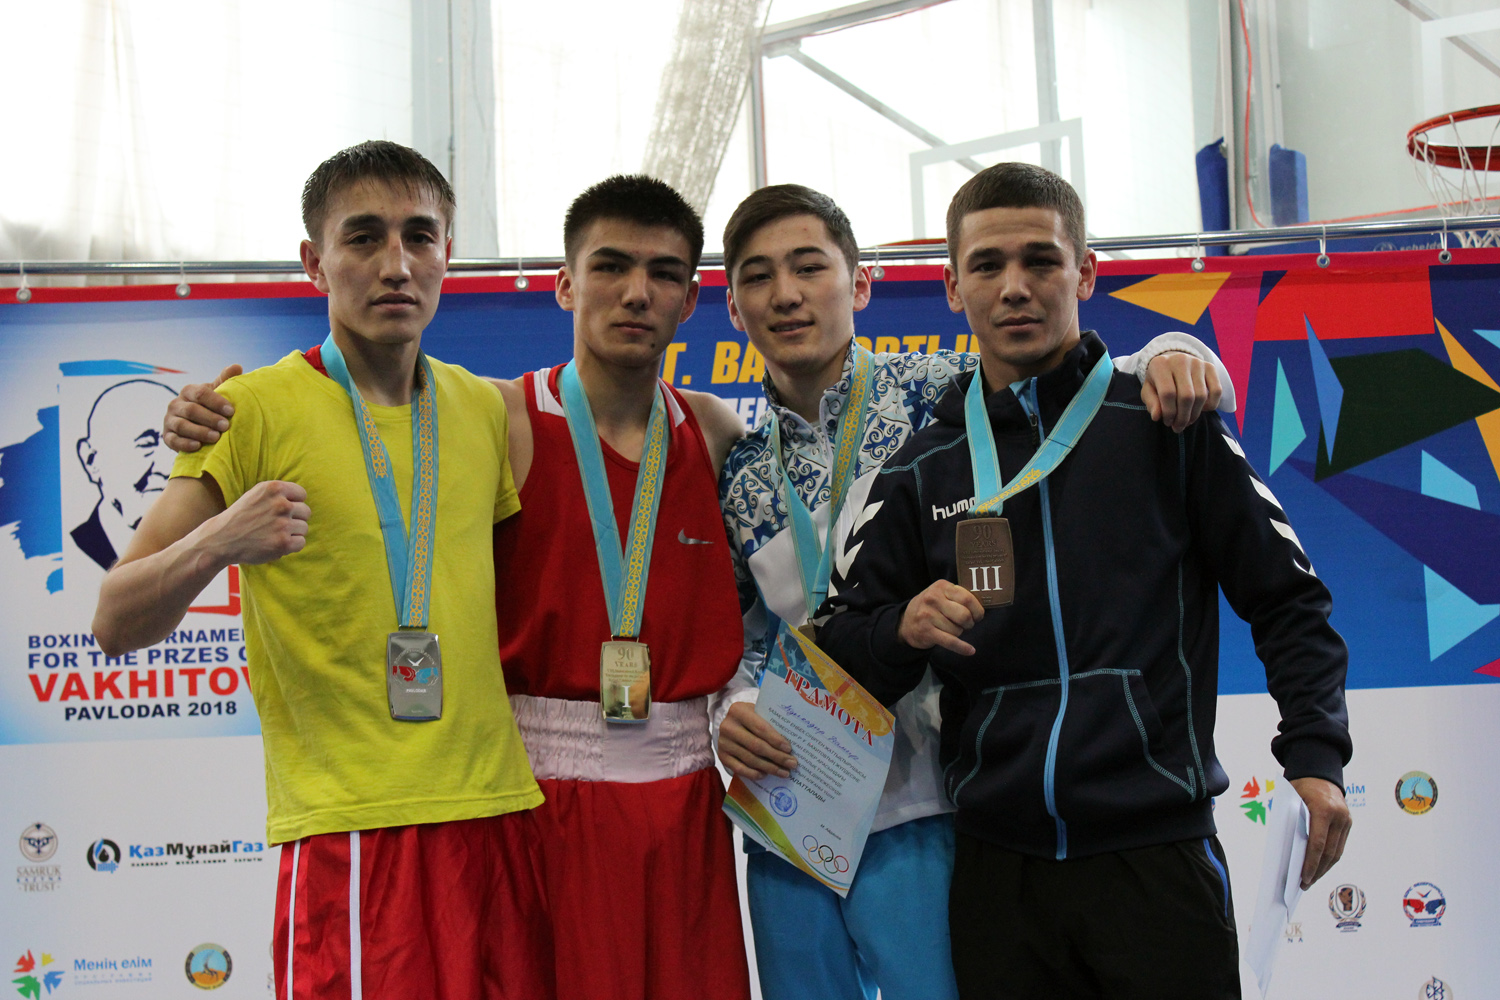 In Pavlodar the international tournament for Vakhitov's prizes ended